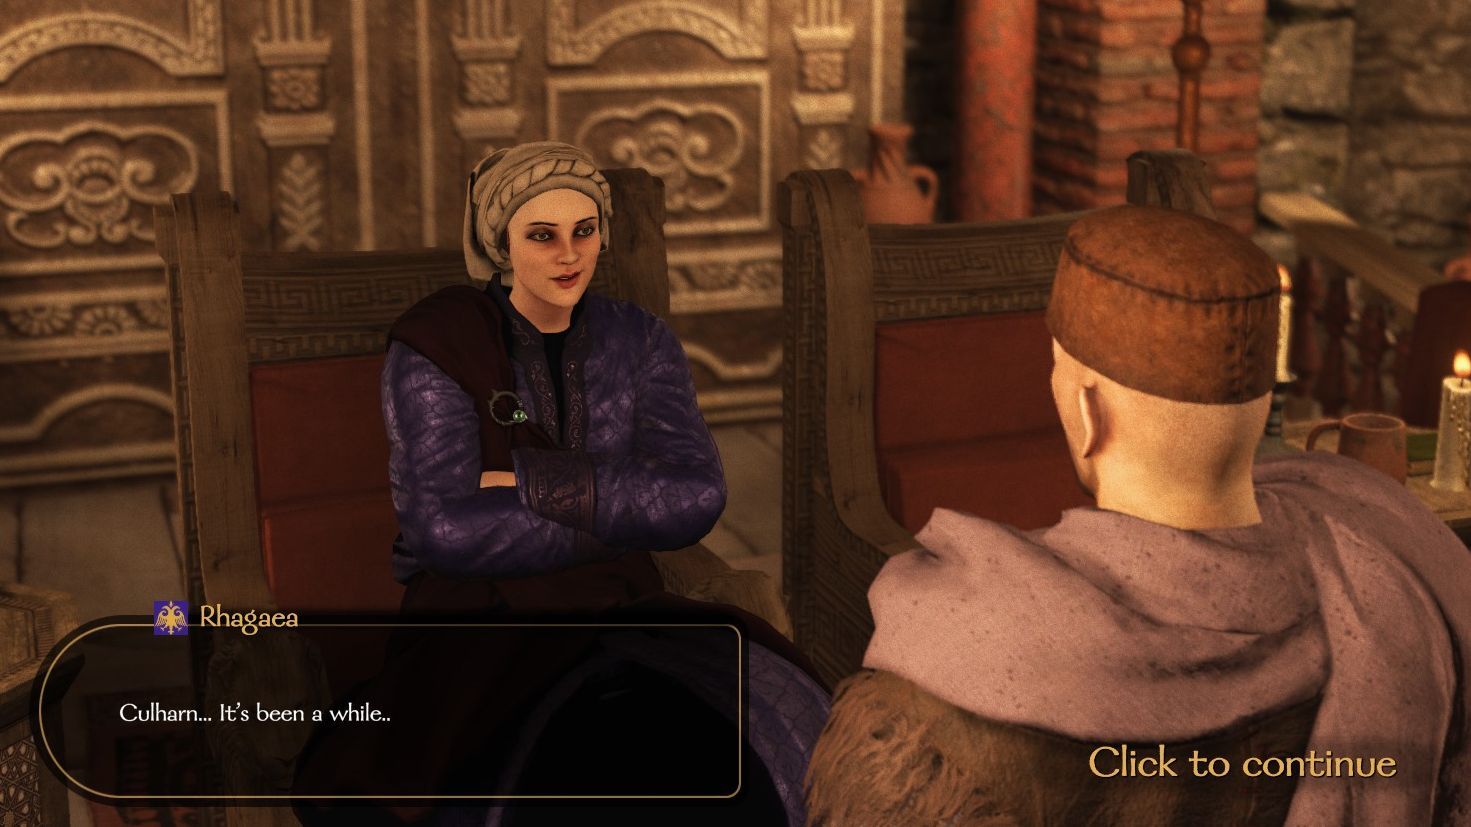 A screenshot from Mount & Blade II showing Empress Rhagaea. She is sitting on her throne, wearing a purple dress, and looks very smug.